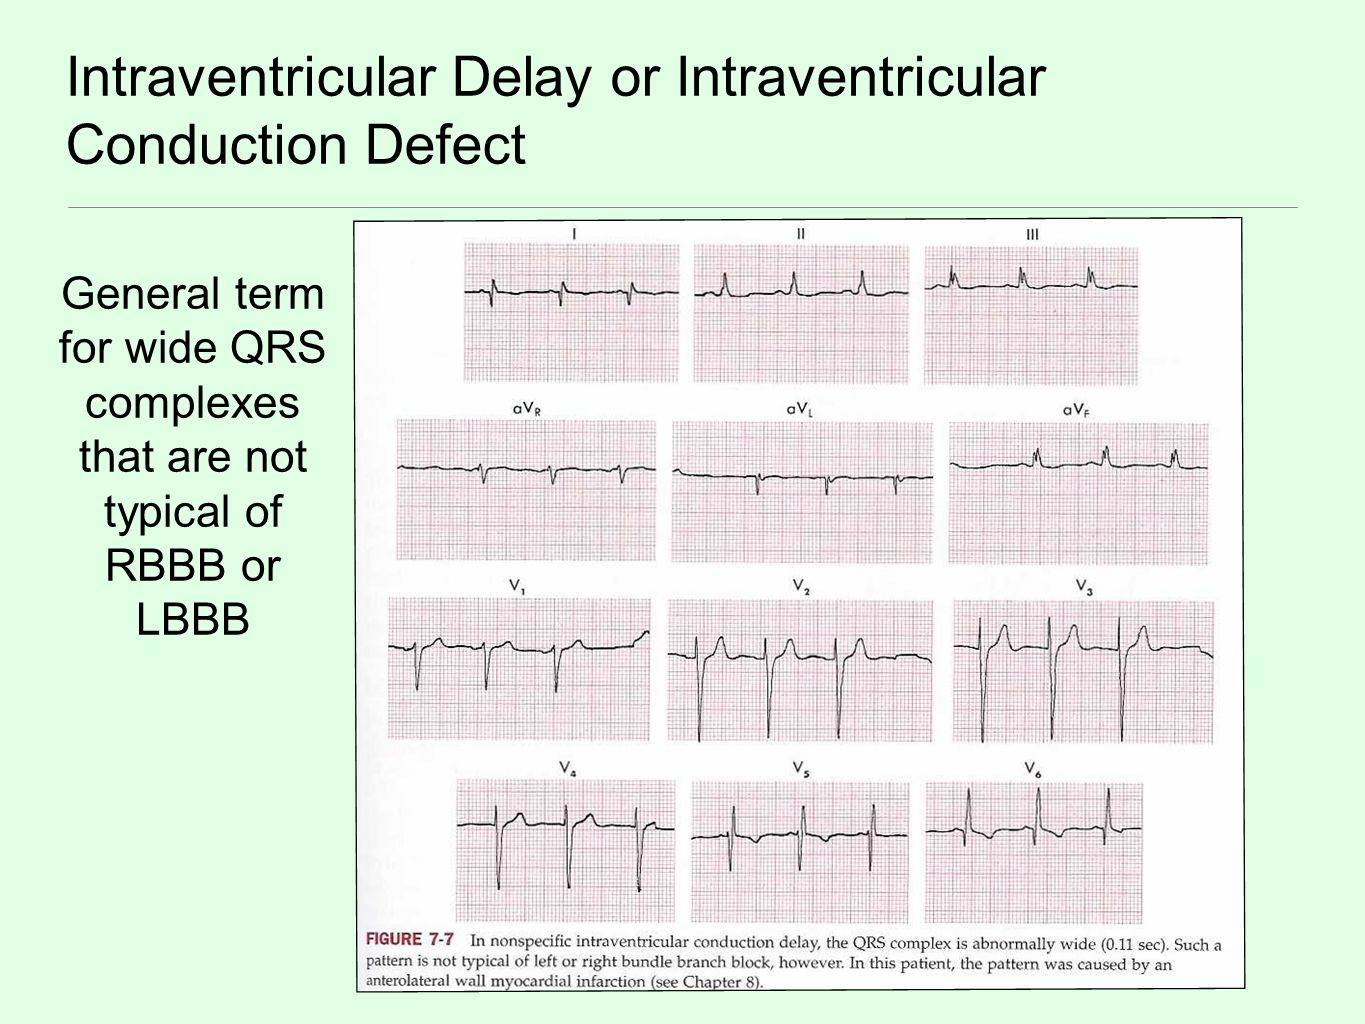 Intraventricular Delay or Intraventricular Conduction Defect General term for wide QRS complexes that are not typical of RBBB or LBBB